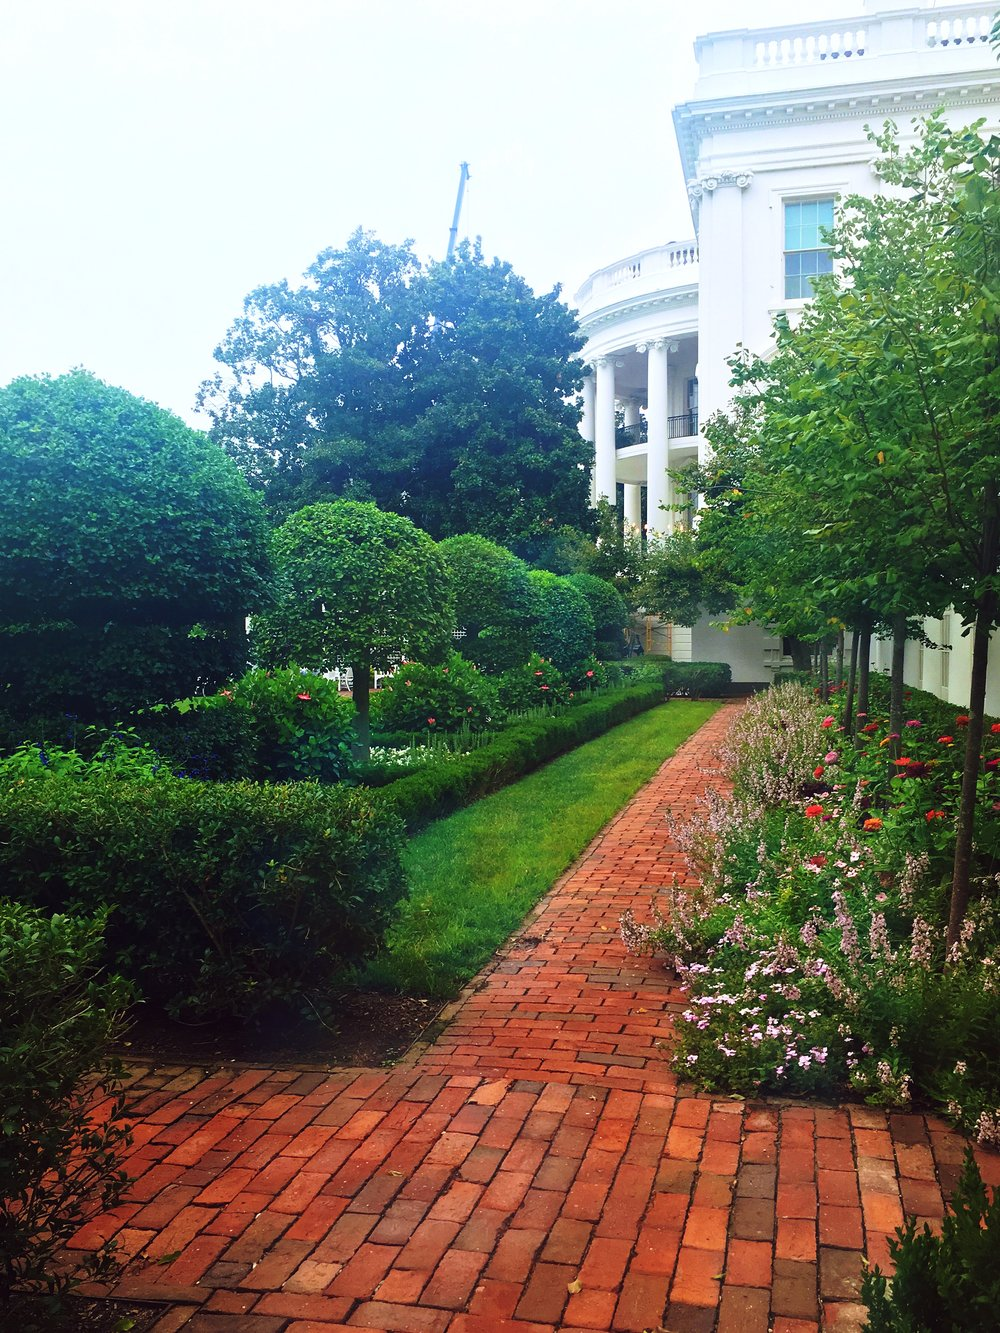 A view of the White House gardens from the East Wing.